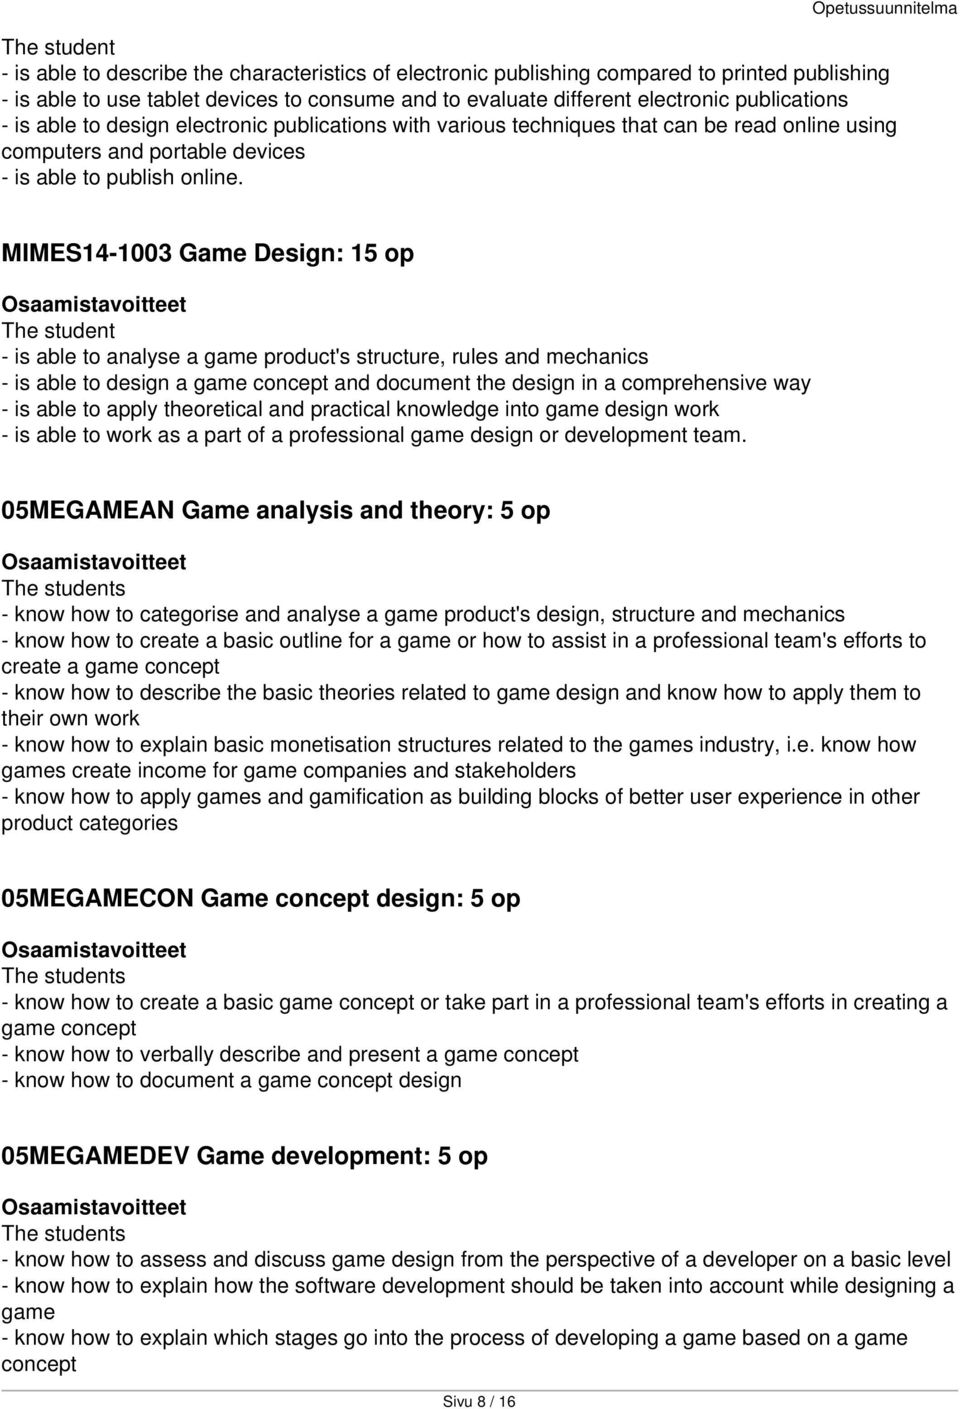 MIMES14-1003 Game Design: 15 op The student - is able to analyse a game product's structure, rules and mechanics - is able to design a game concept and document the design in a comprehensive way - is